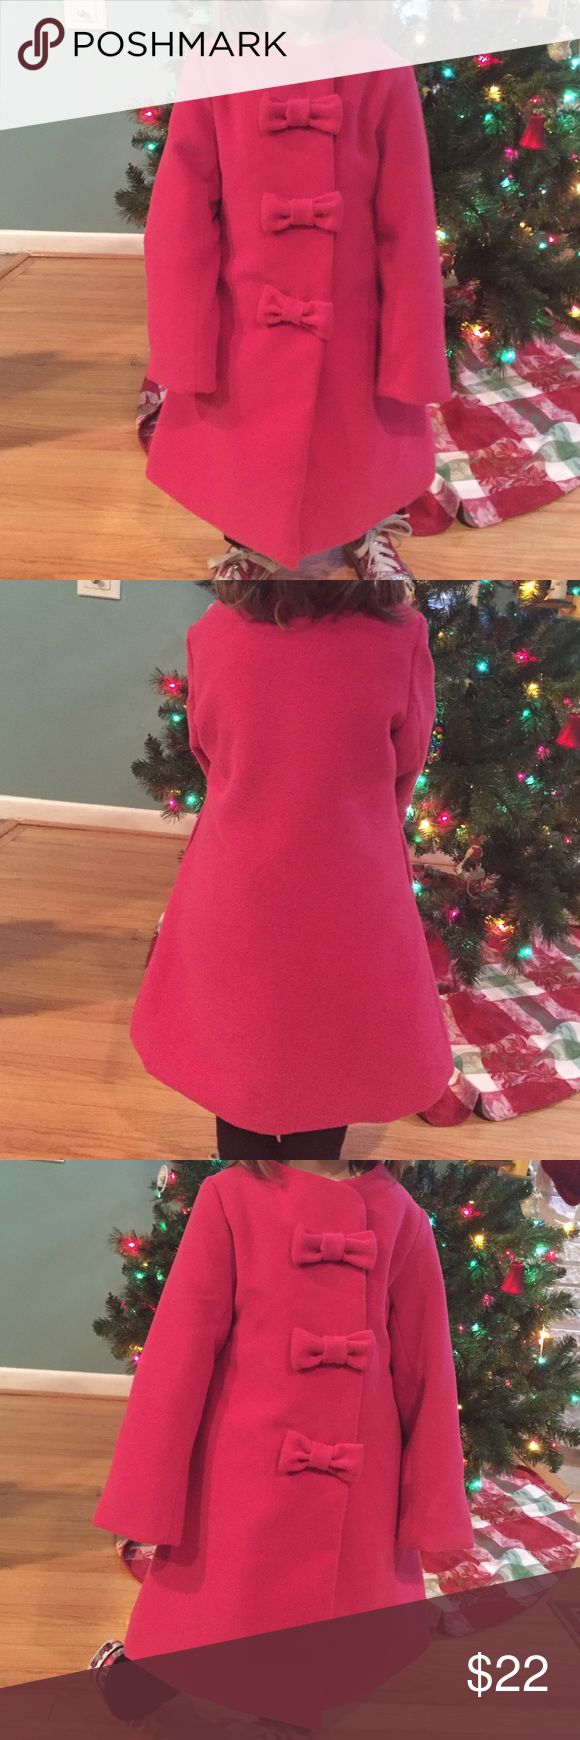 Pink Widgeon 6x Peacoat Widgeon brand 6x girls peacoat.  Made to mimic wool without the hassle of wool.  Pre-loved, looks like new.  Warm and adorably dressy. Widgeon Jackets & Coats Pea Coats